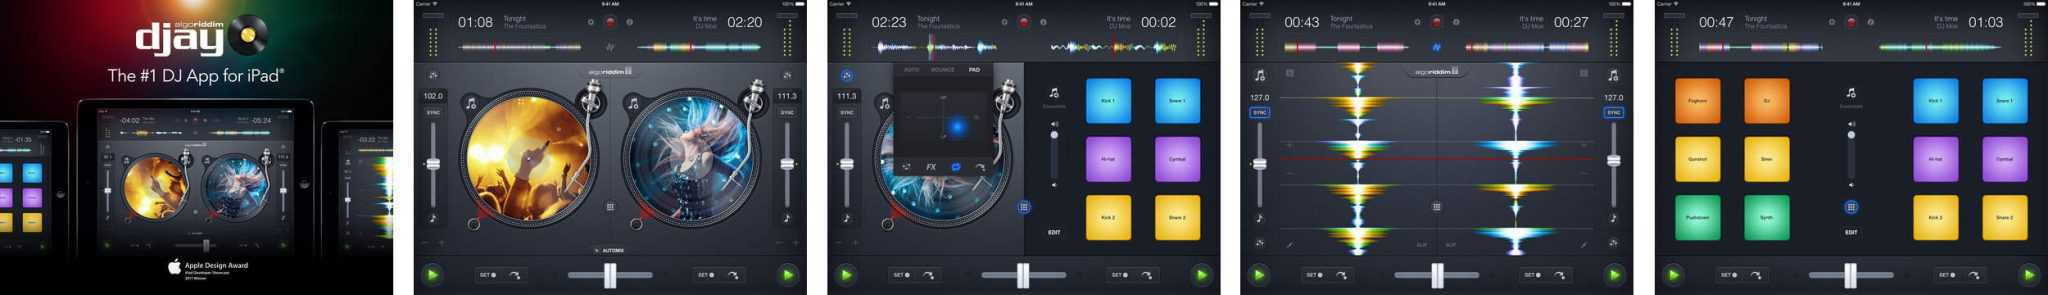 djay2 for apple ipad